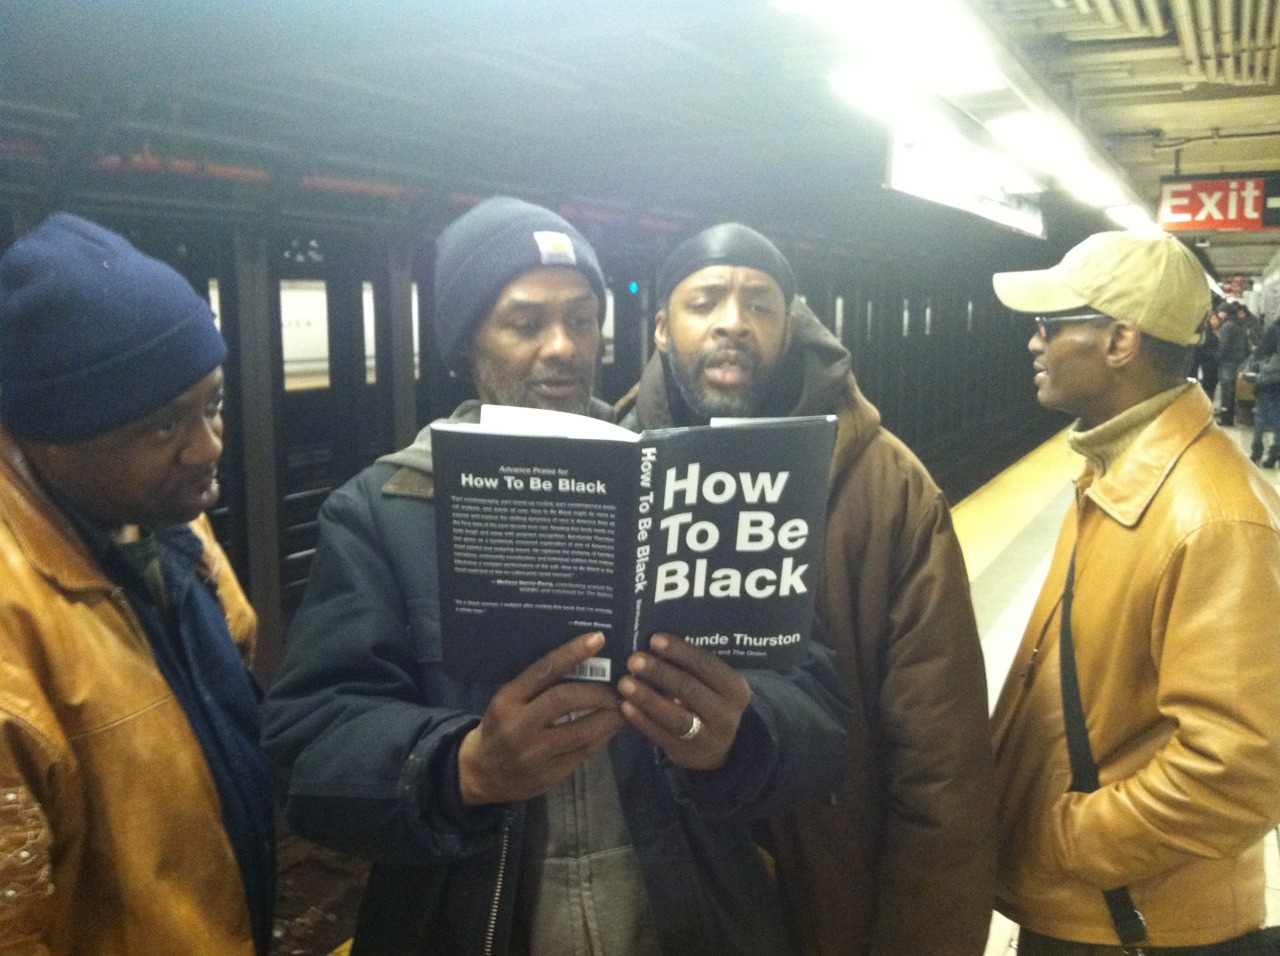 What happens when Neal Brennan (comedian and co-creator of Chappelle's Show) gets caught with a copy of How To Be Black in the NYC subway? BLACK PEOPLE INVESTIGATE!